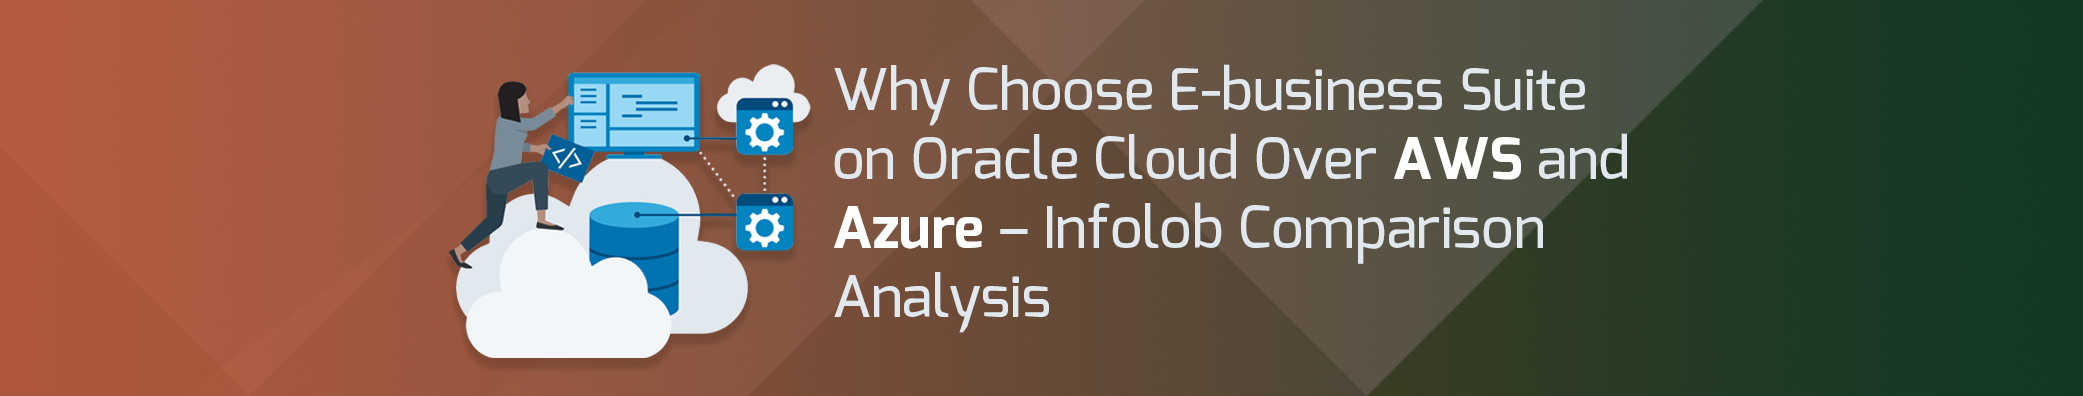 Why Choose E-business Suite on Oracle Cloud Over AWS and Azure – Infolob Comparison Analysis